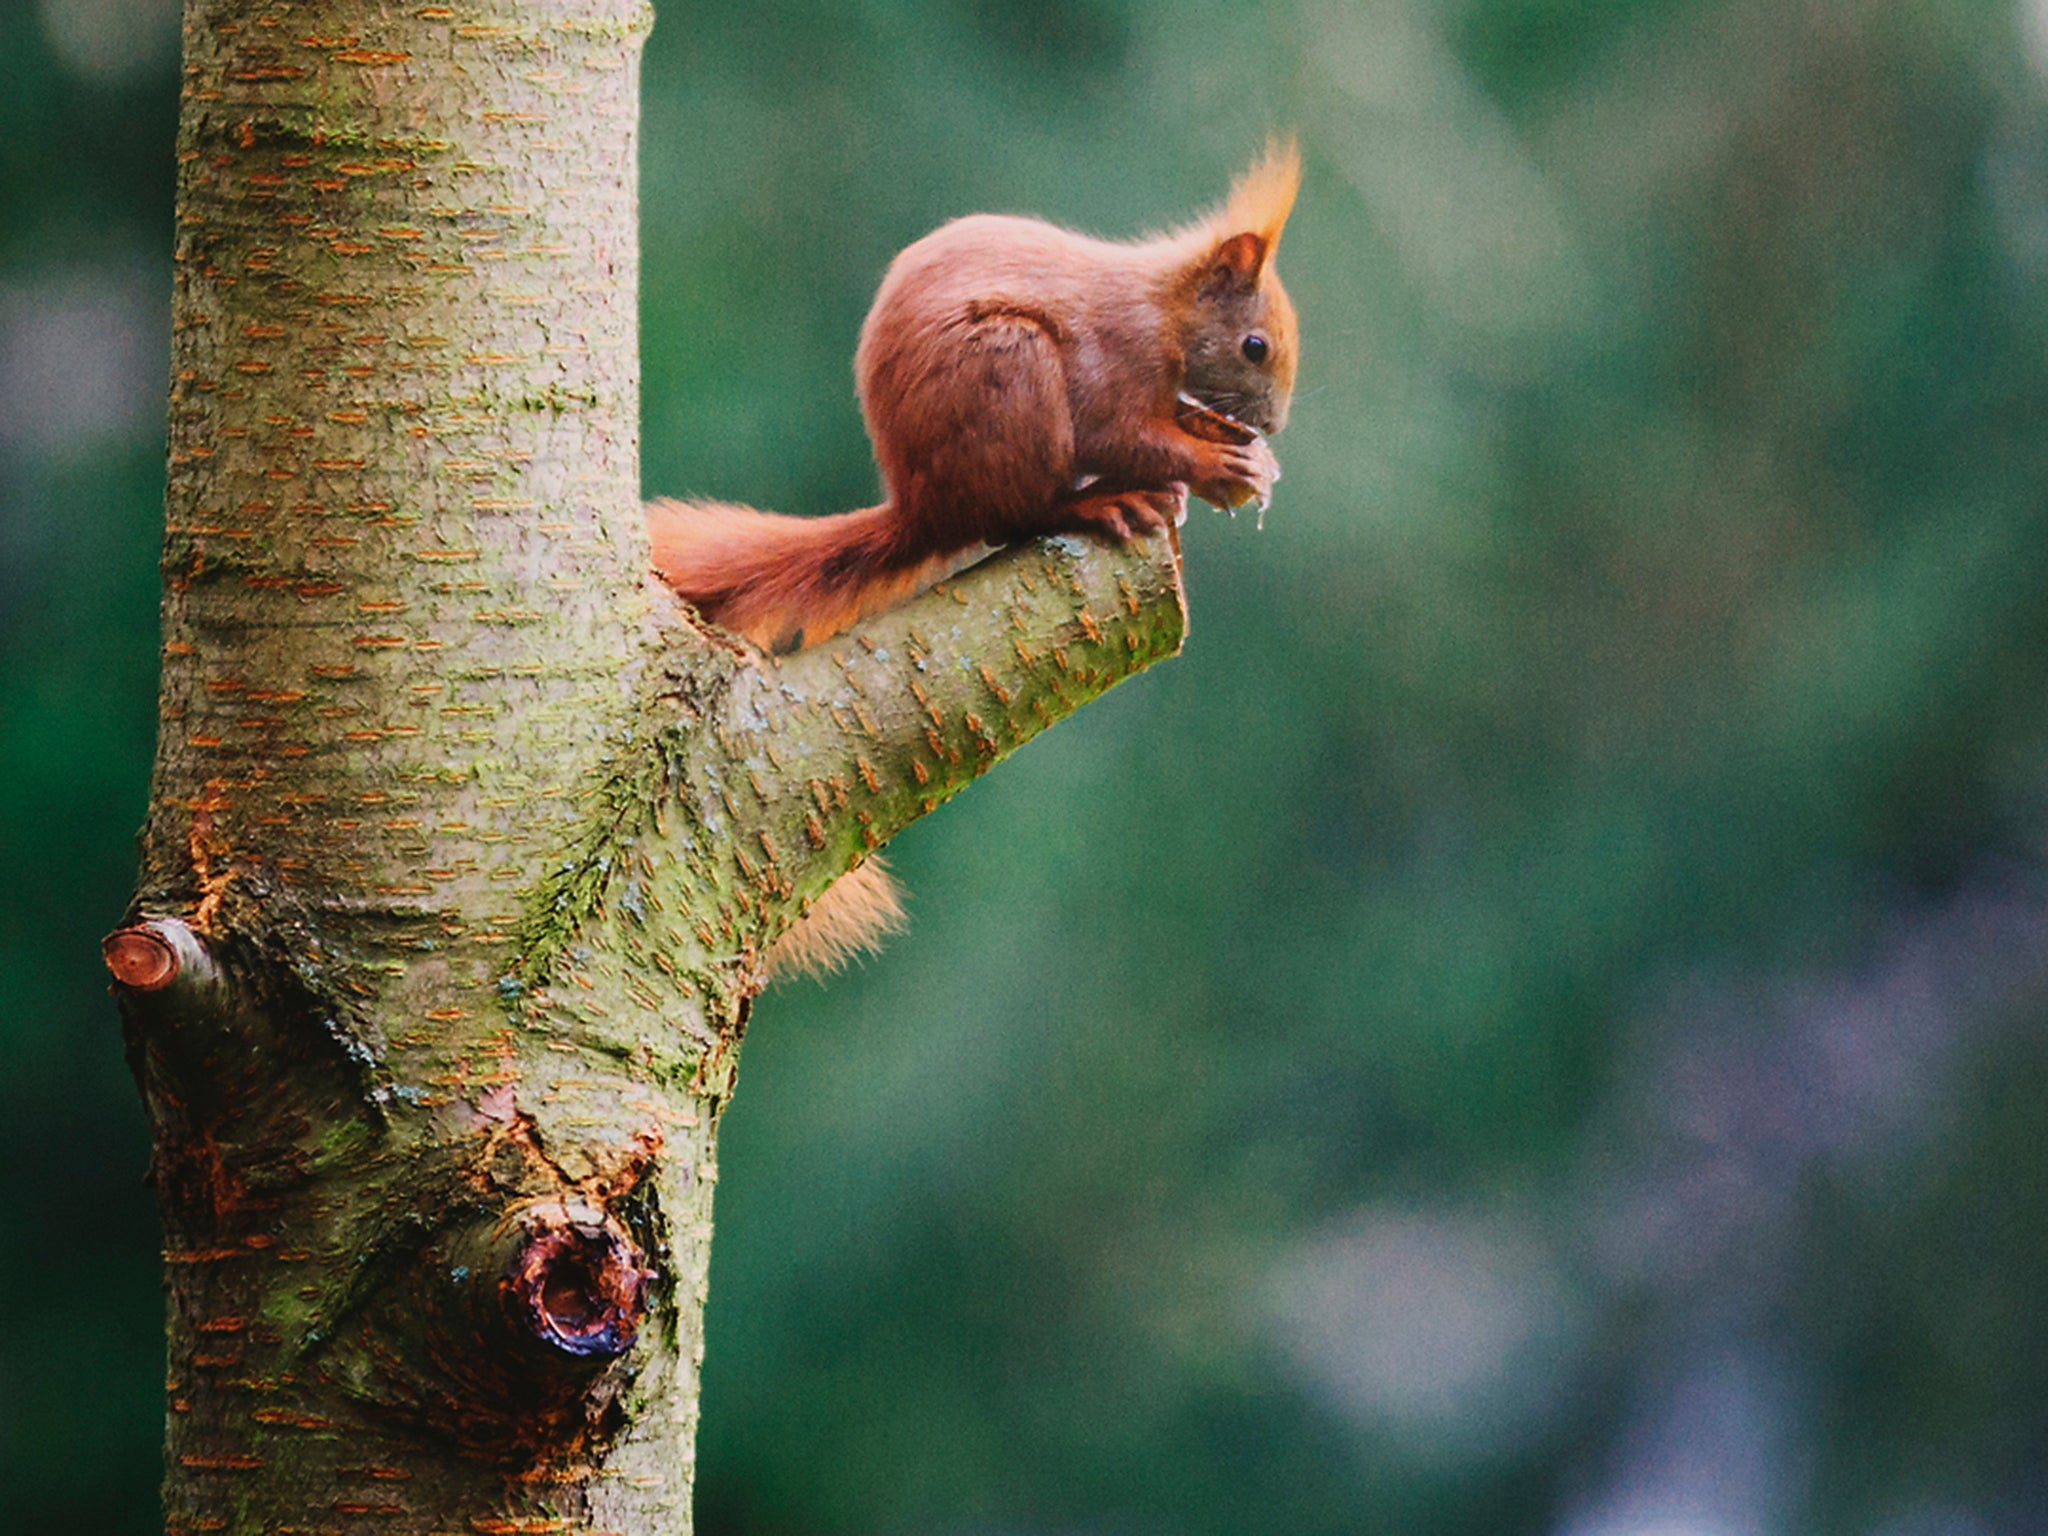 British red squirrels are suffering from an outbreak of medieval leprosy | The Independent